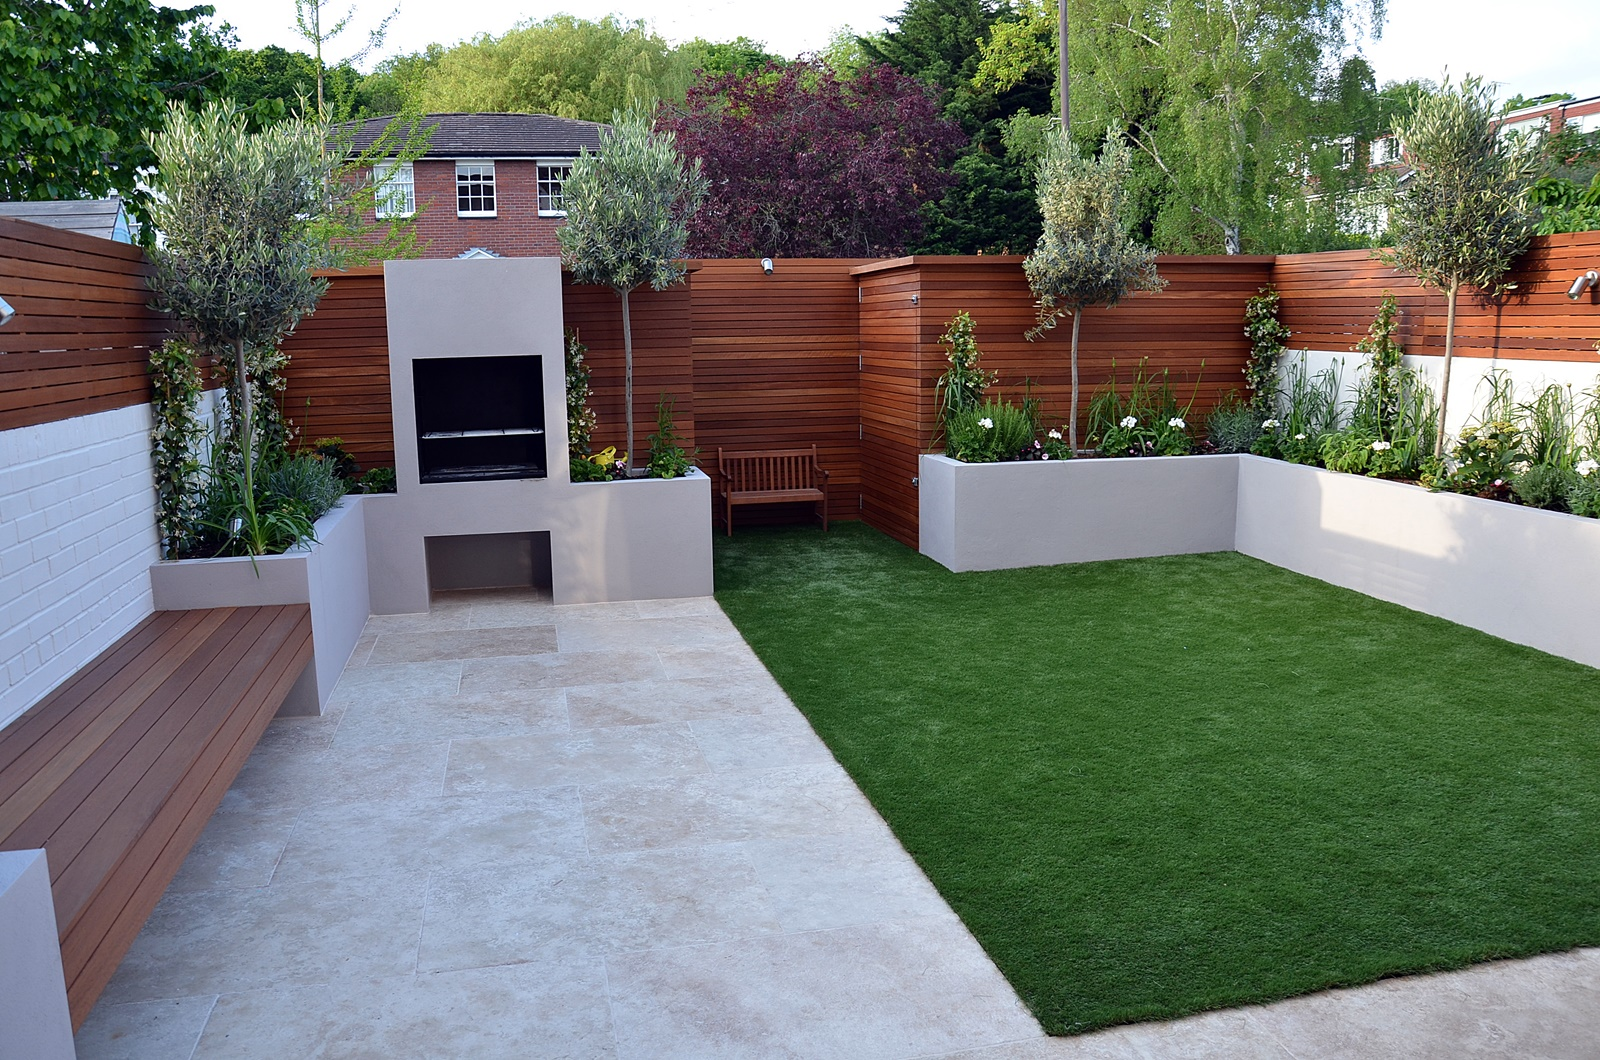 Modern garden design fulham chelsea clapham battersea for Garden design ideas in uk